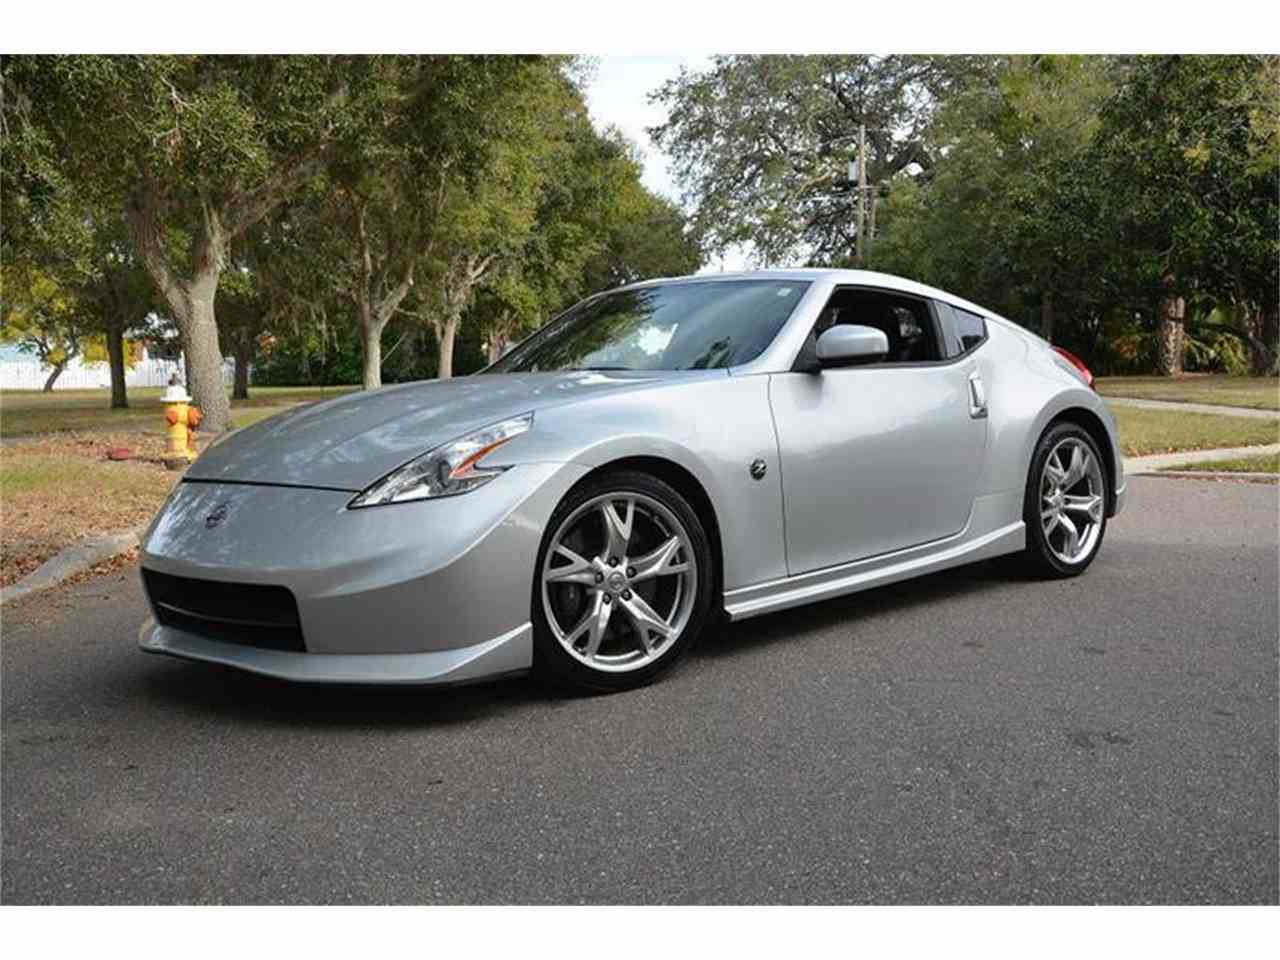 Large Picture of 2009 Nissan 370Z Offered by PJ's Auto World - JZUJ